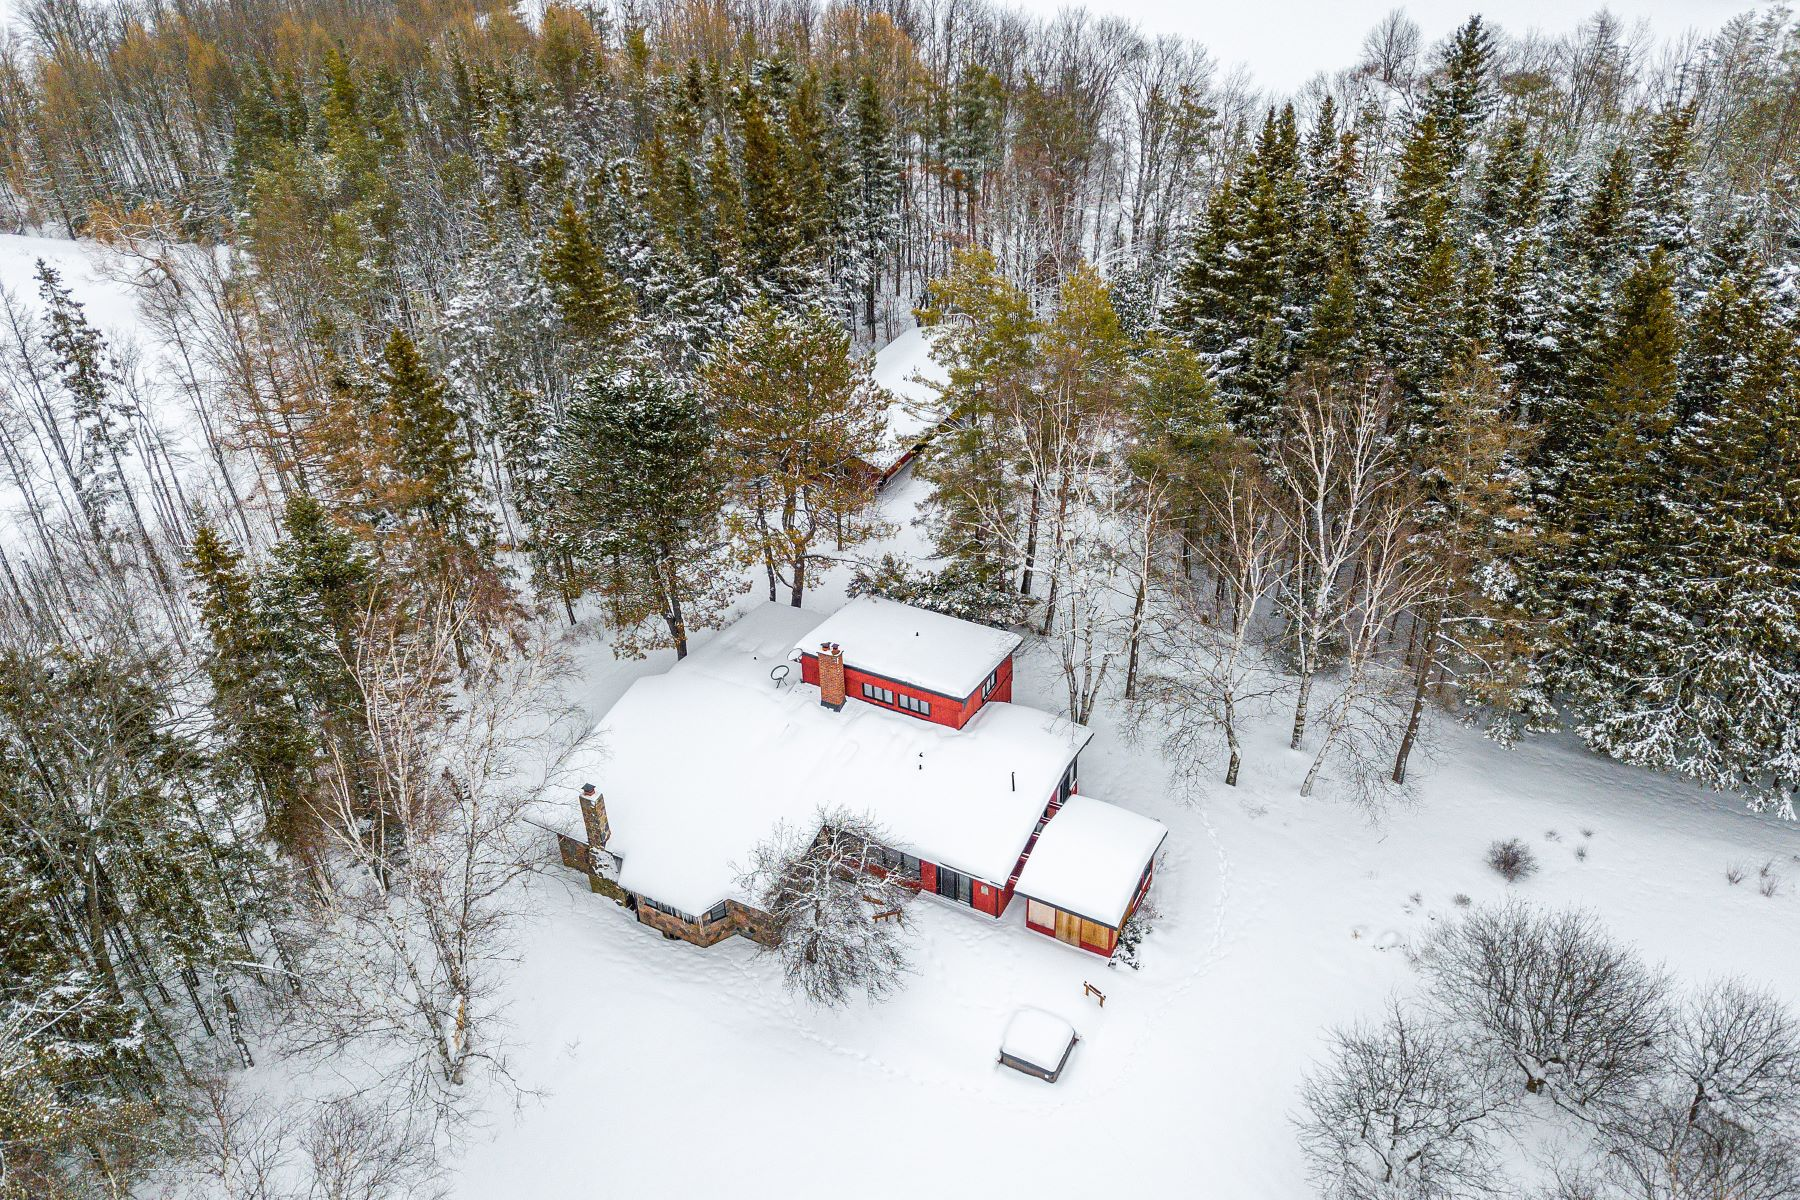 Single Family Homes for Sale at The Farm 3996 Concession 10 Road South Creemore, Ontario L0M 1G0 Canada